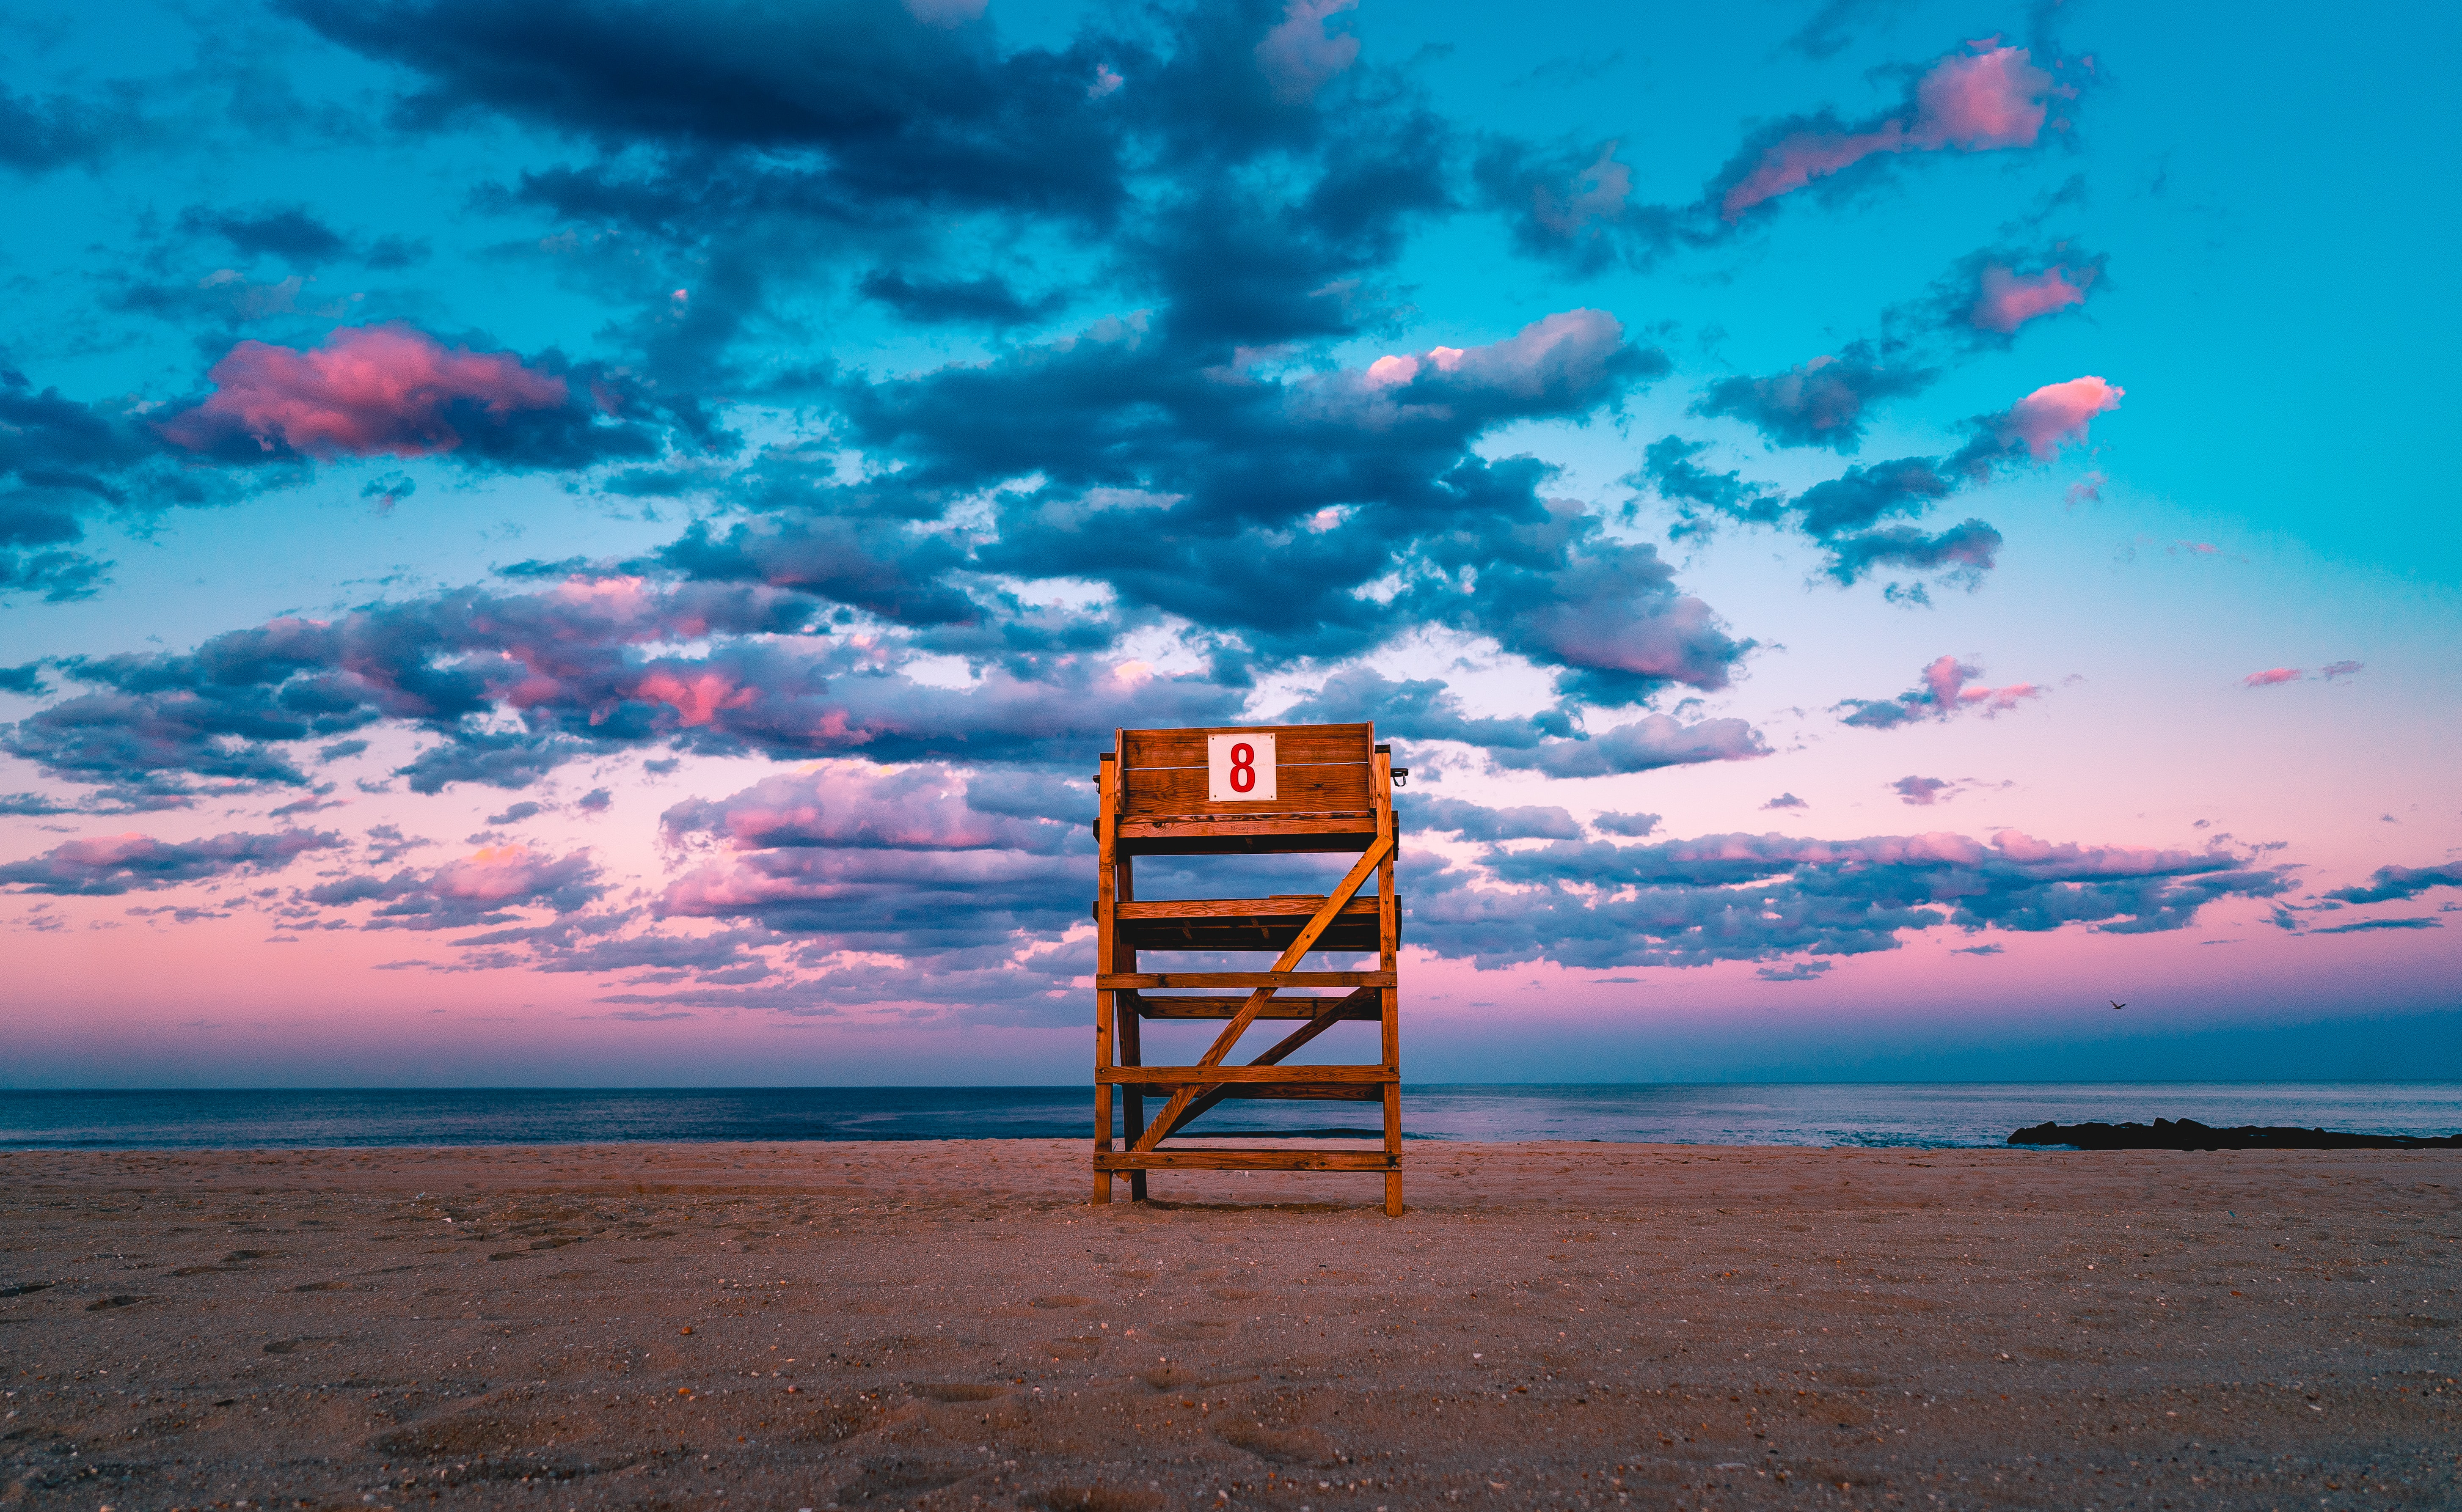 Lifeguard tower number 8 at the Bradley Beach after the sunset